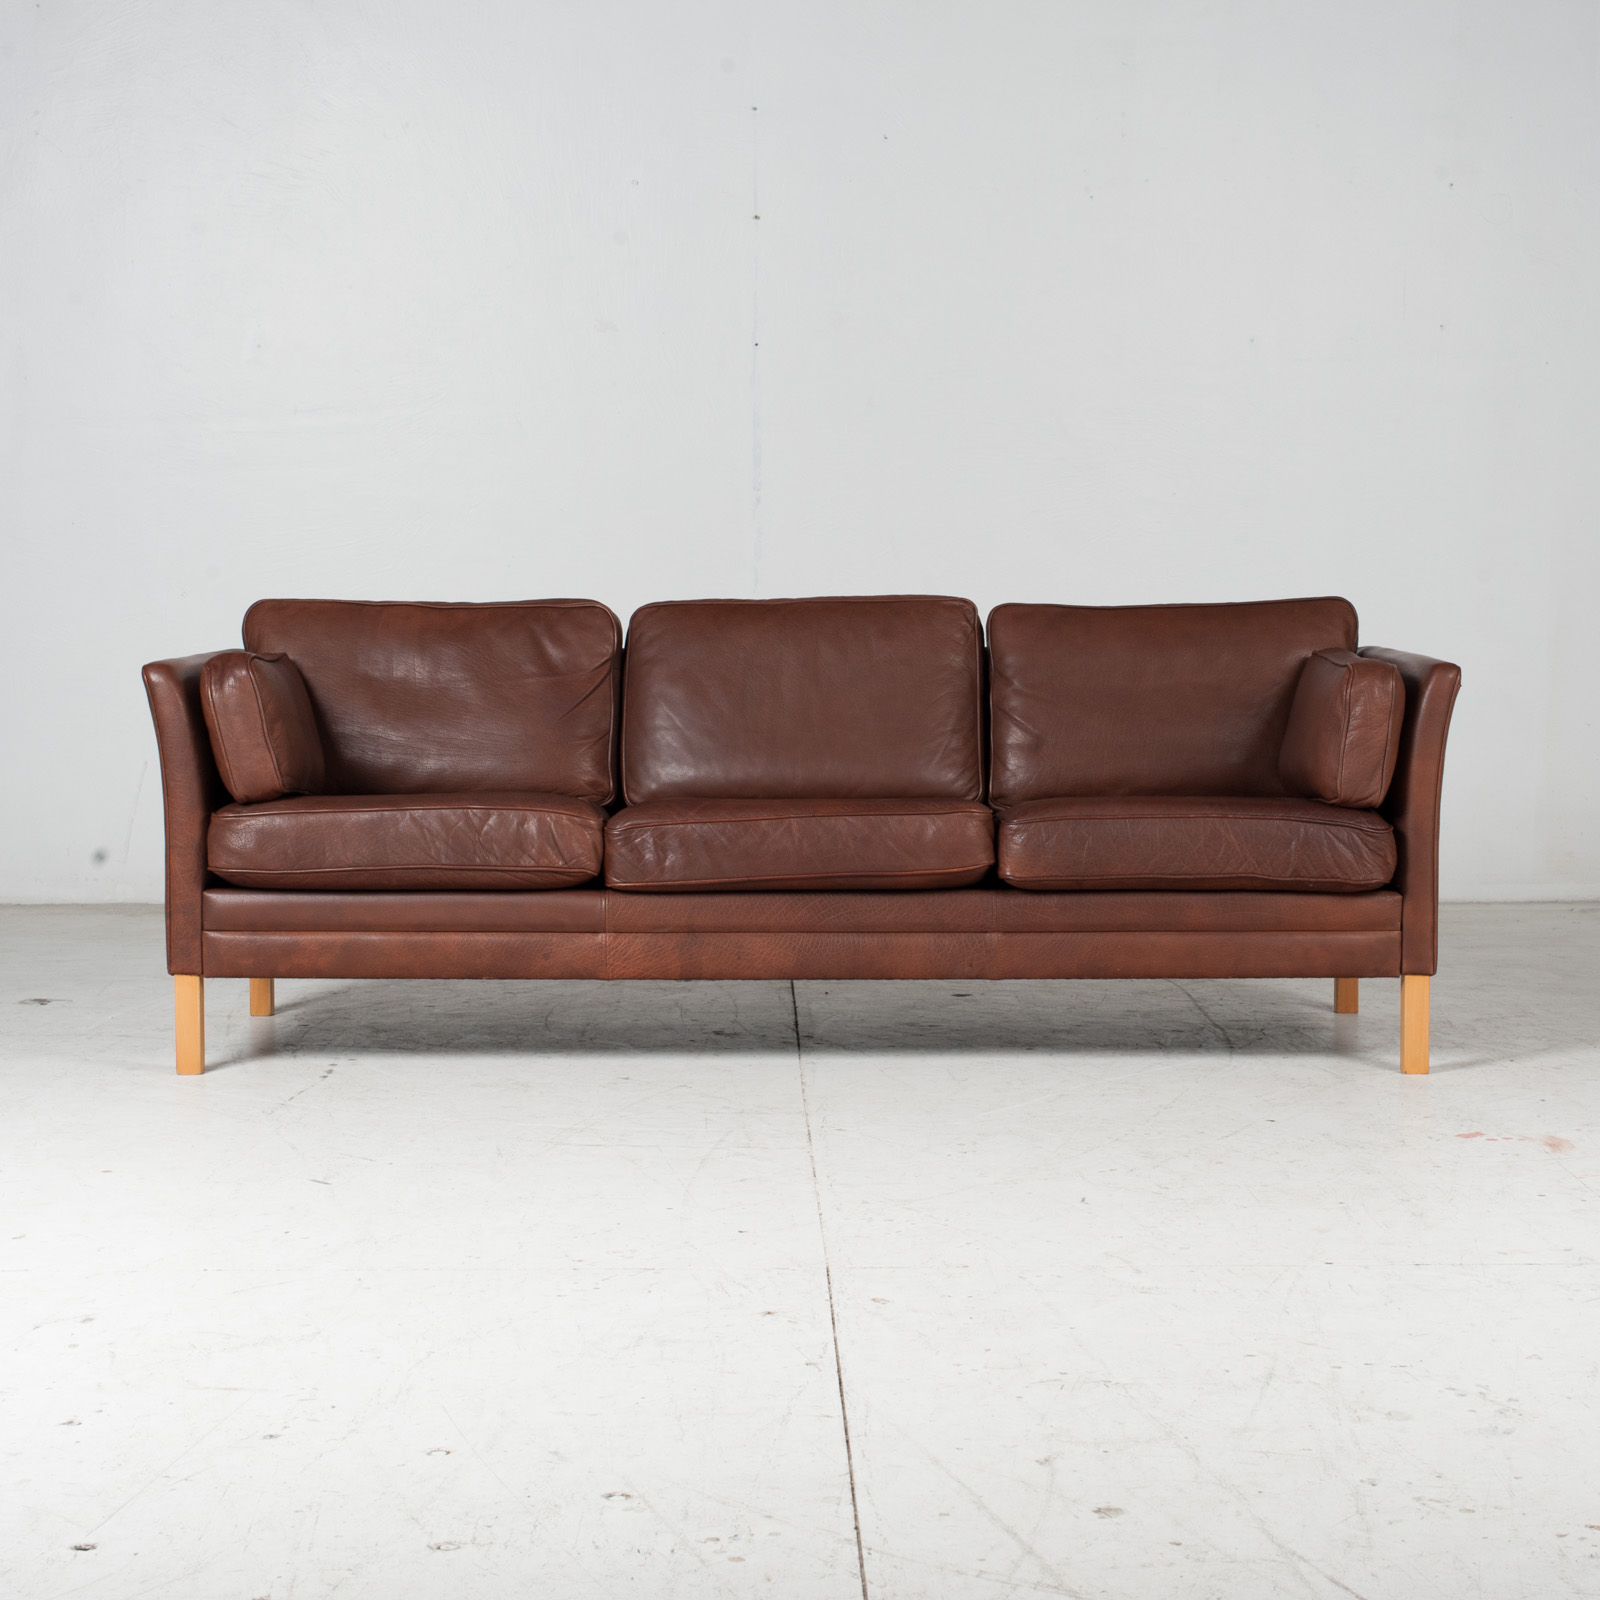 3 Seat Sofa In Brown Leather With Beech Legs, 1960s, Denmark 3